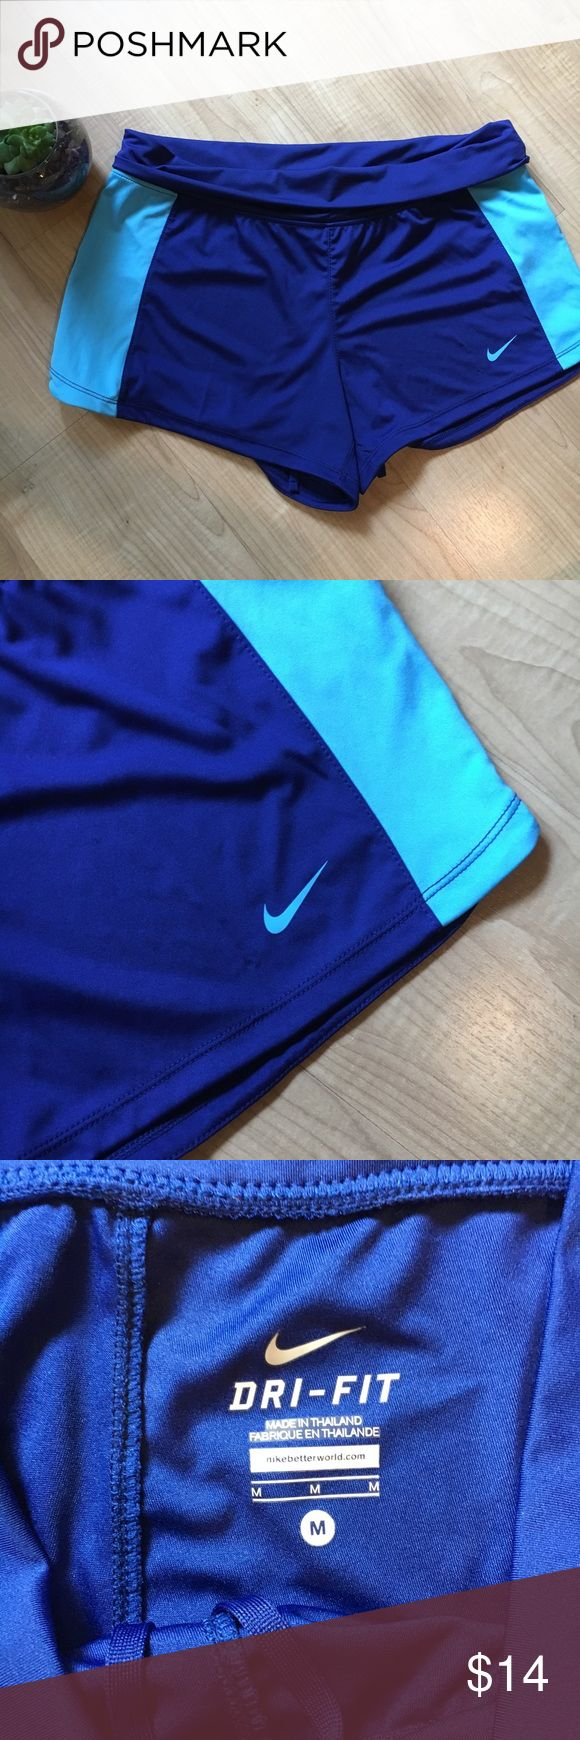 Nike Dri Fit Work Out Shorts Comfy Nike Dri Fit Shorts perfect for working out or running! Size Medium Nike Shorts